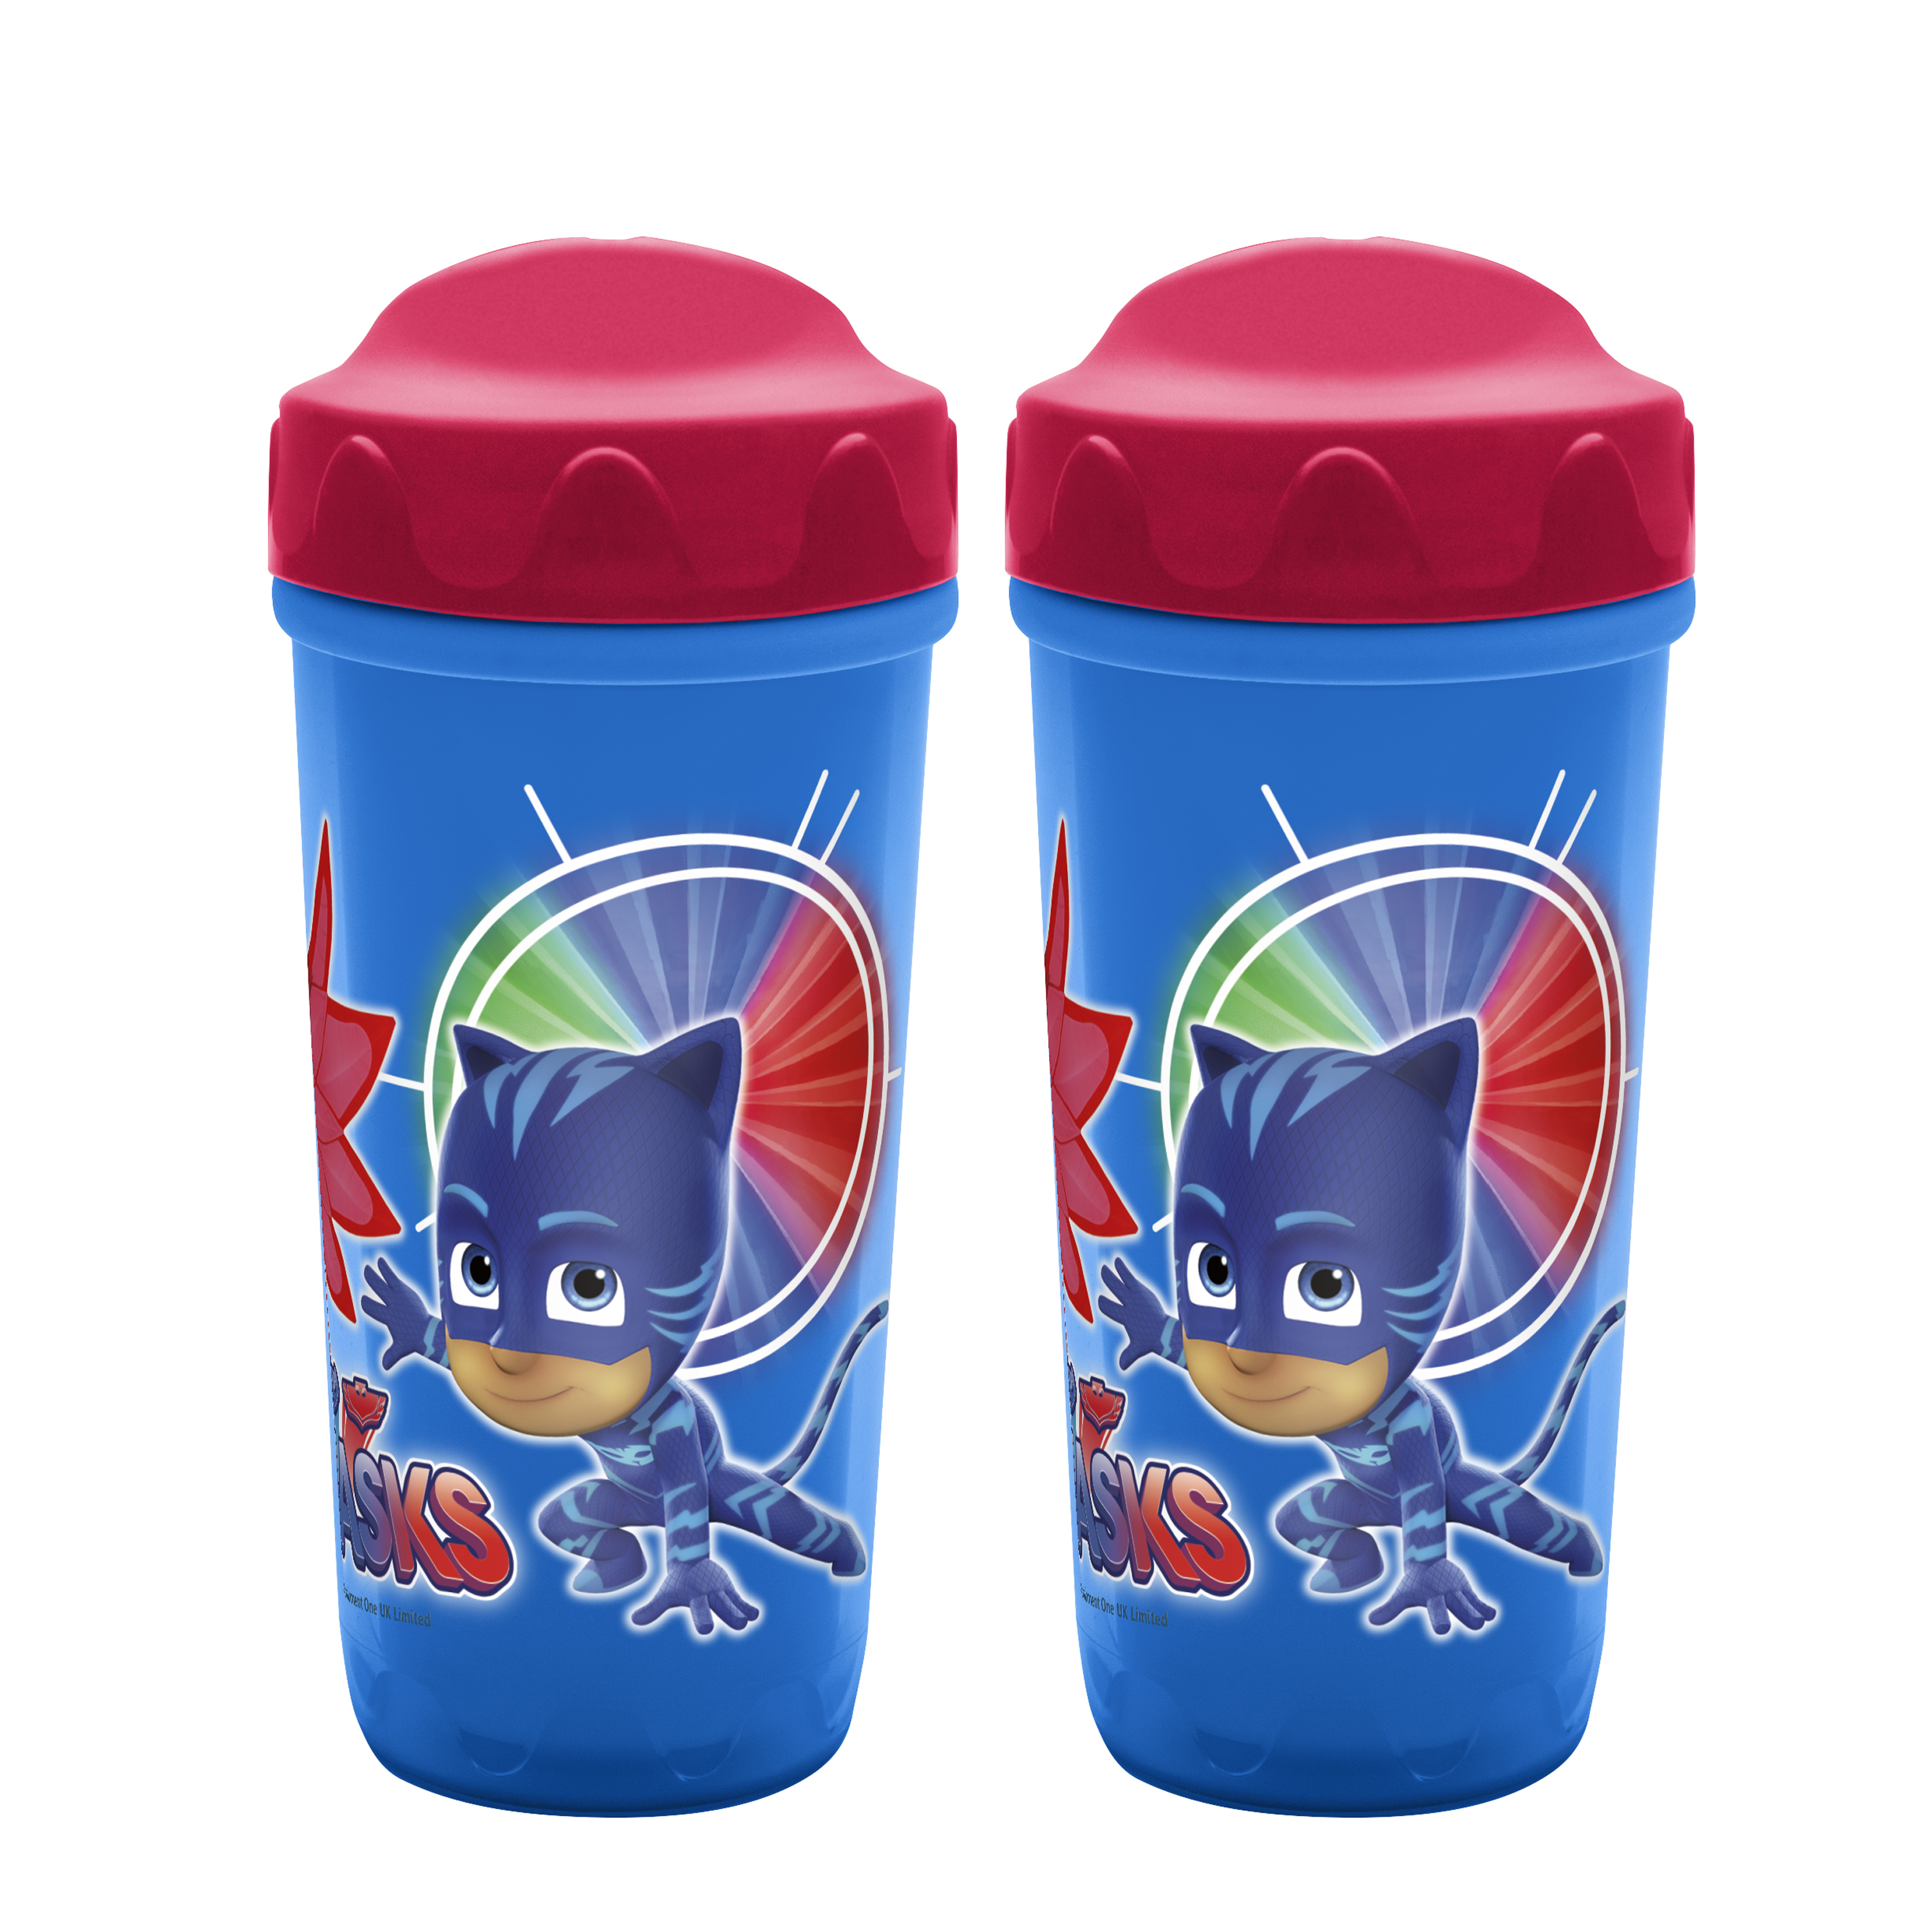 PJ Masks 8.7 ounce Sippy Cup, Catboy, Owlette & Gekko, 2-piece set slideshow image 1